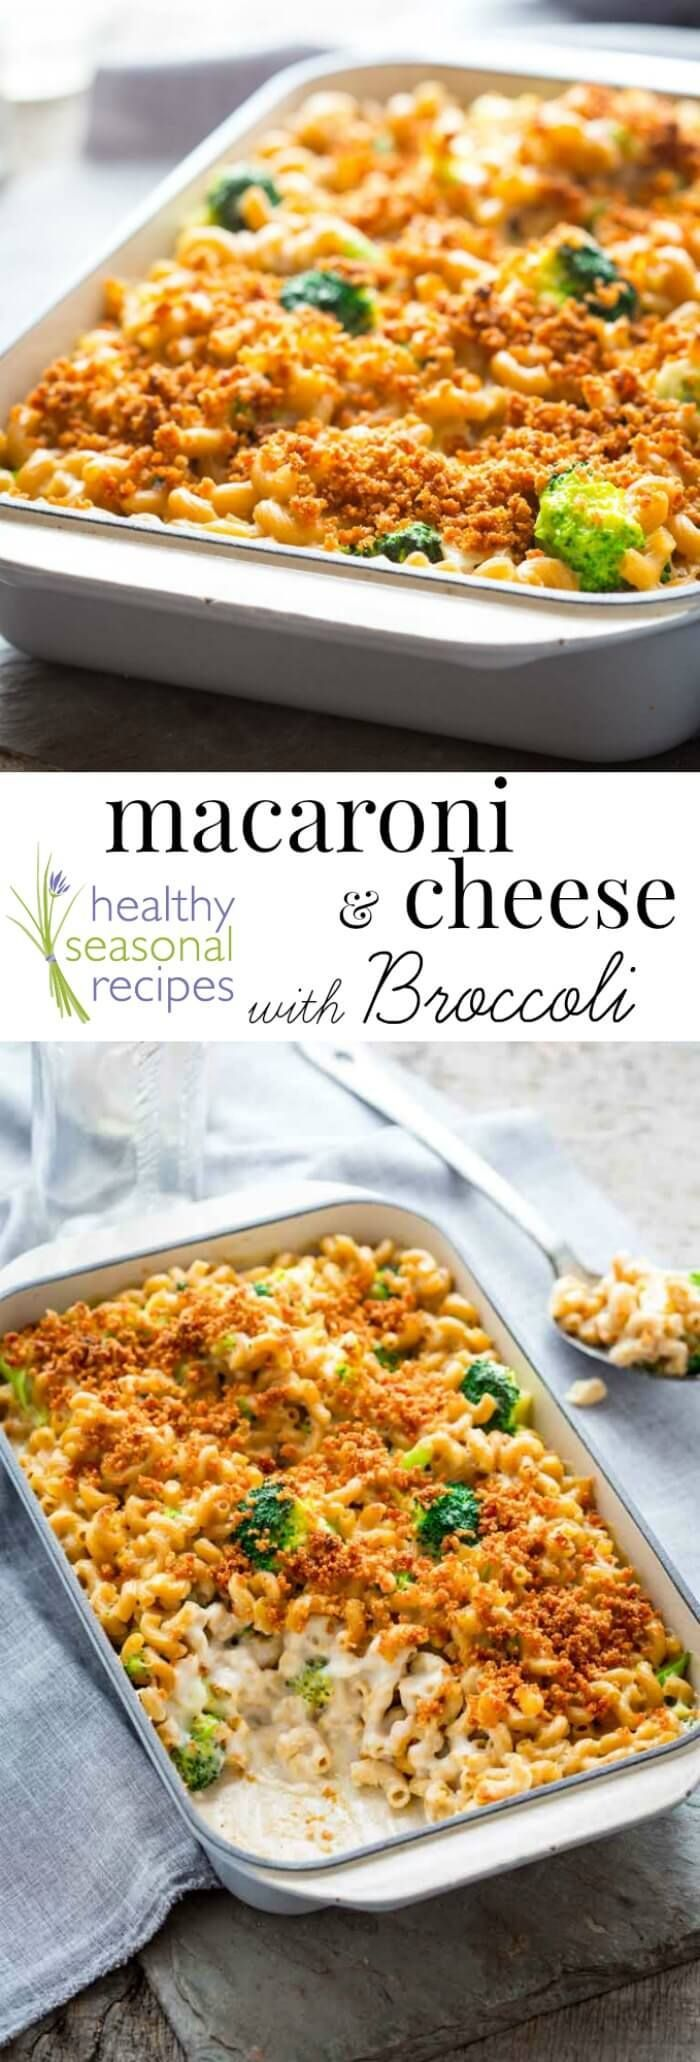 This delicious baked macaroni & cheese with broccoli is a healthy make-over of the classic casserole. But with its crunchy golden brown breadcrumb topping and uber-creamy cheese sauce you won't miss a thing. This is a family weeknight dinner favorite and